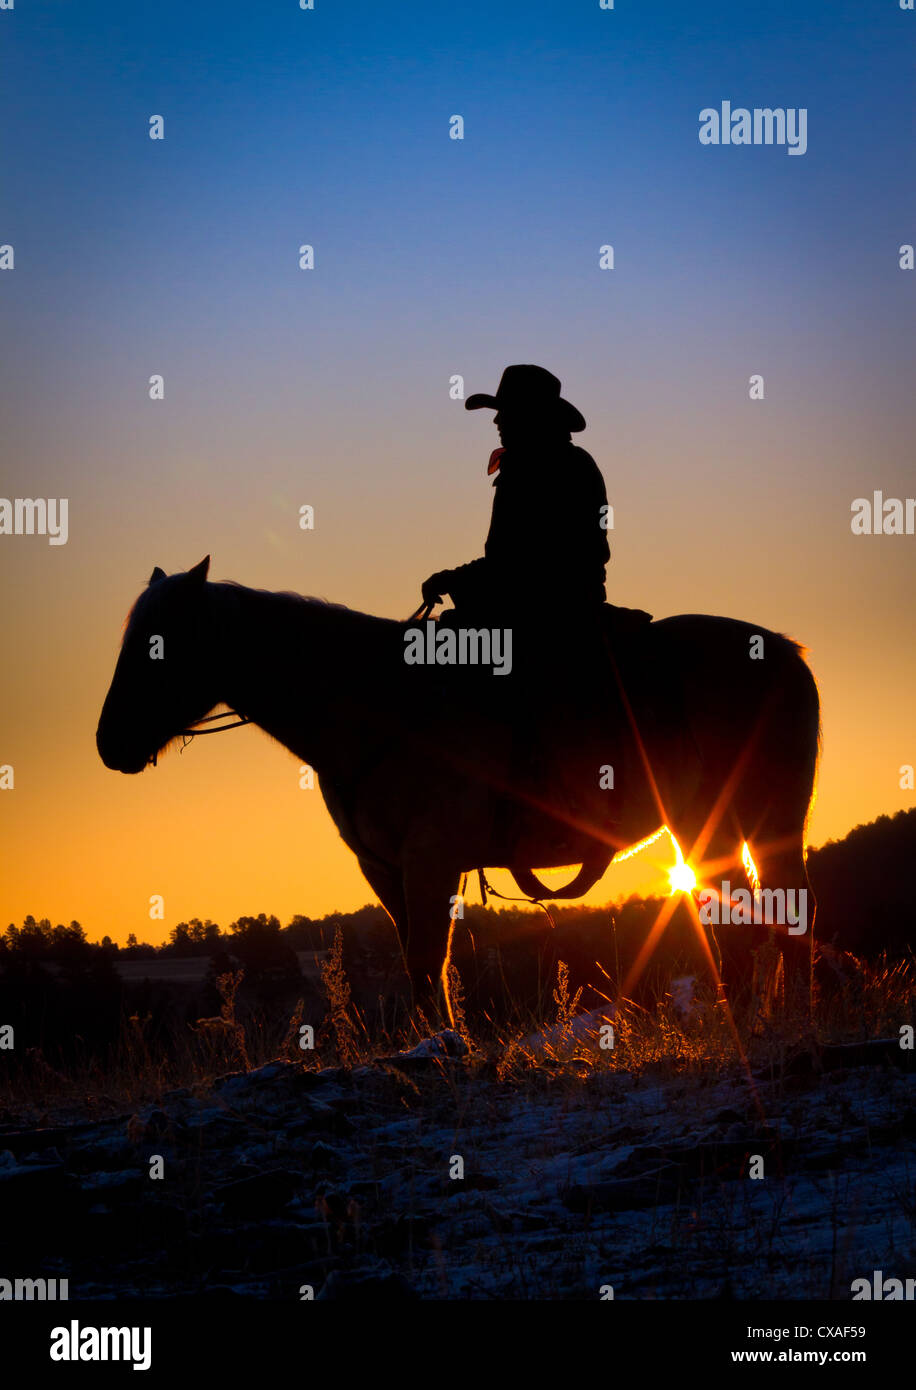 Cowboy on horse silhouetted against the rising sun and morning sky in eastern Wyoming - Stock Image